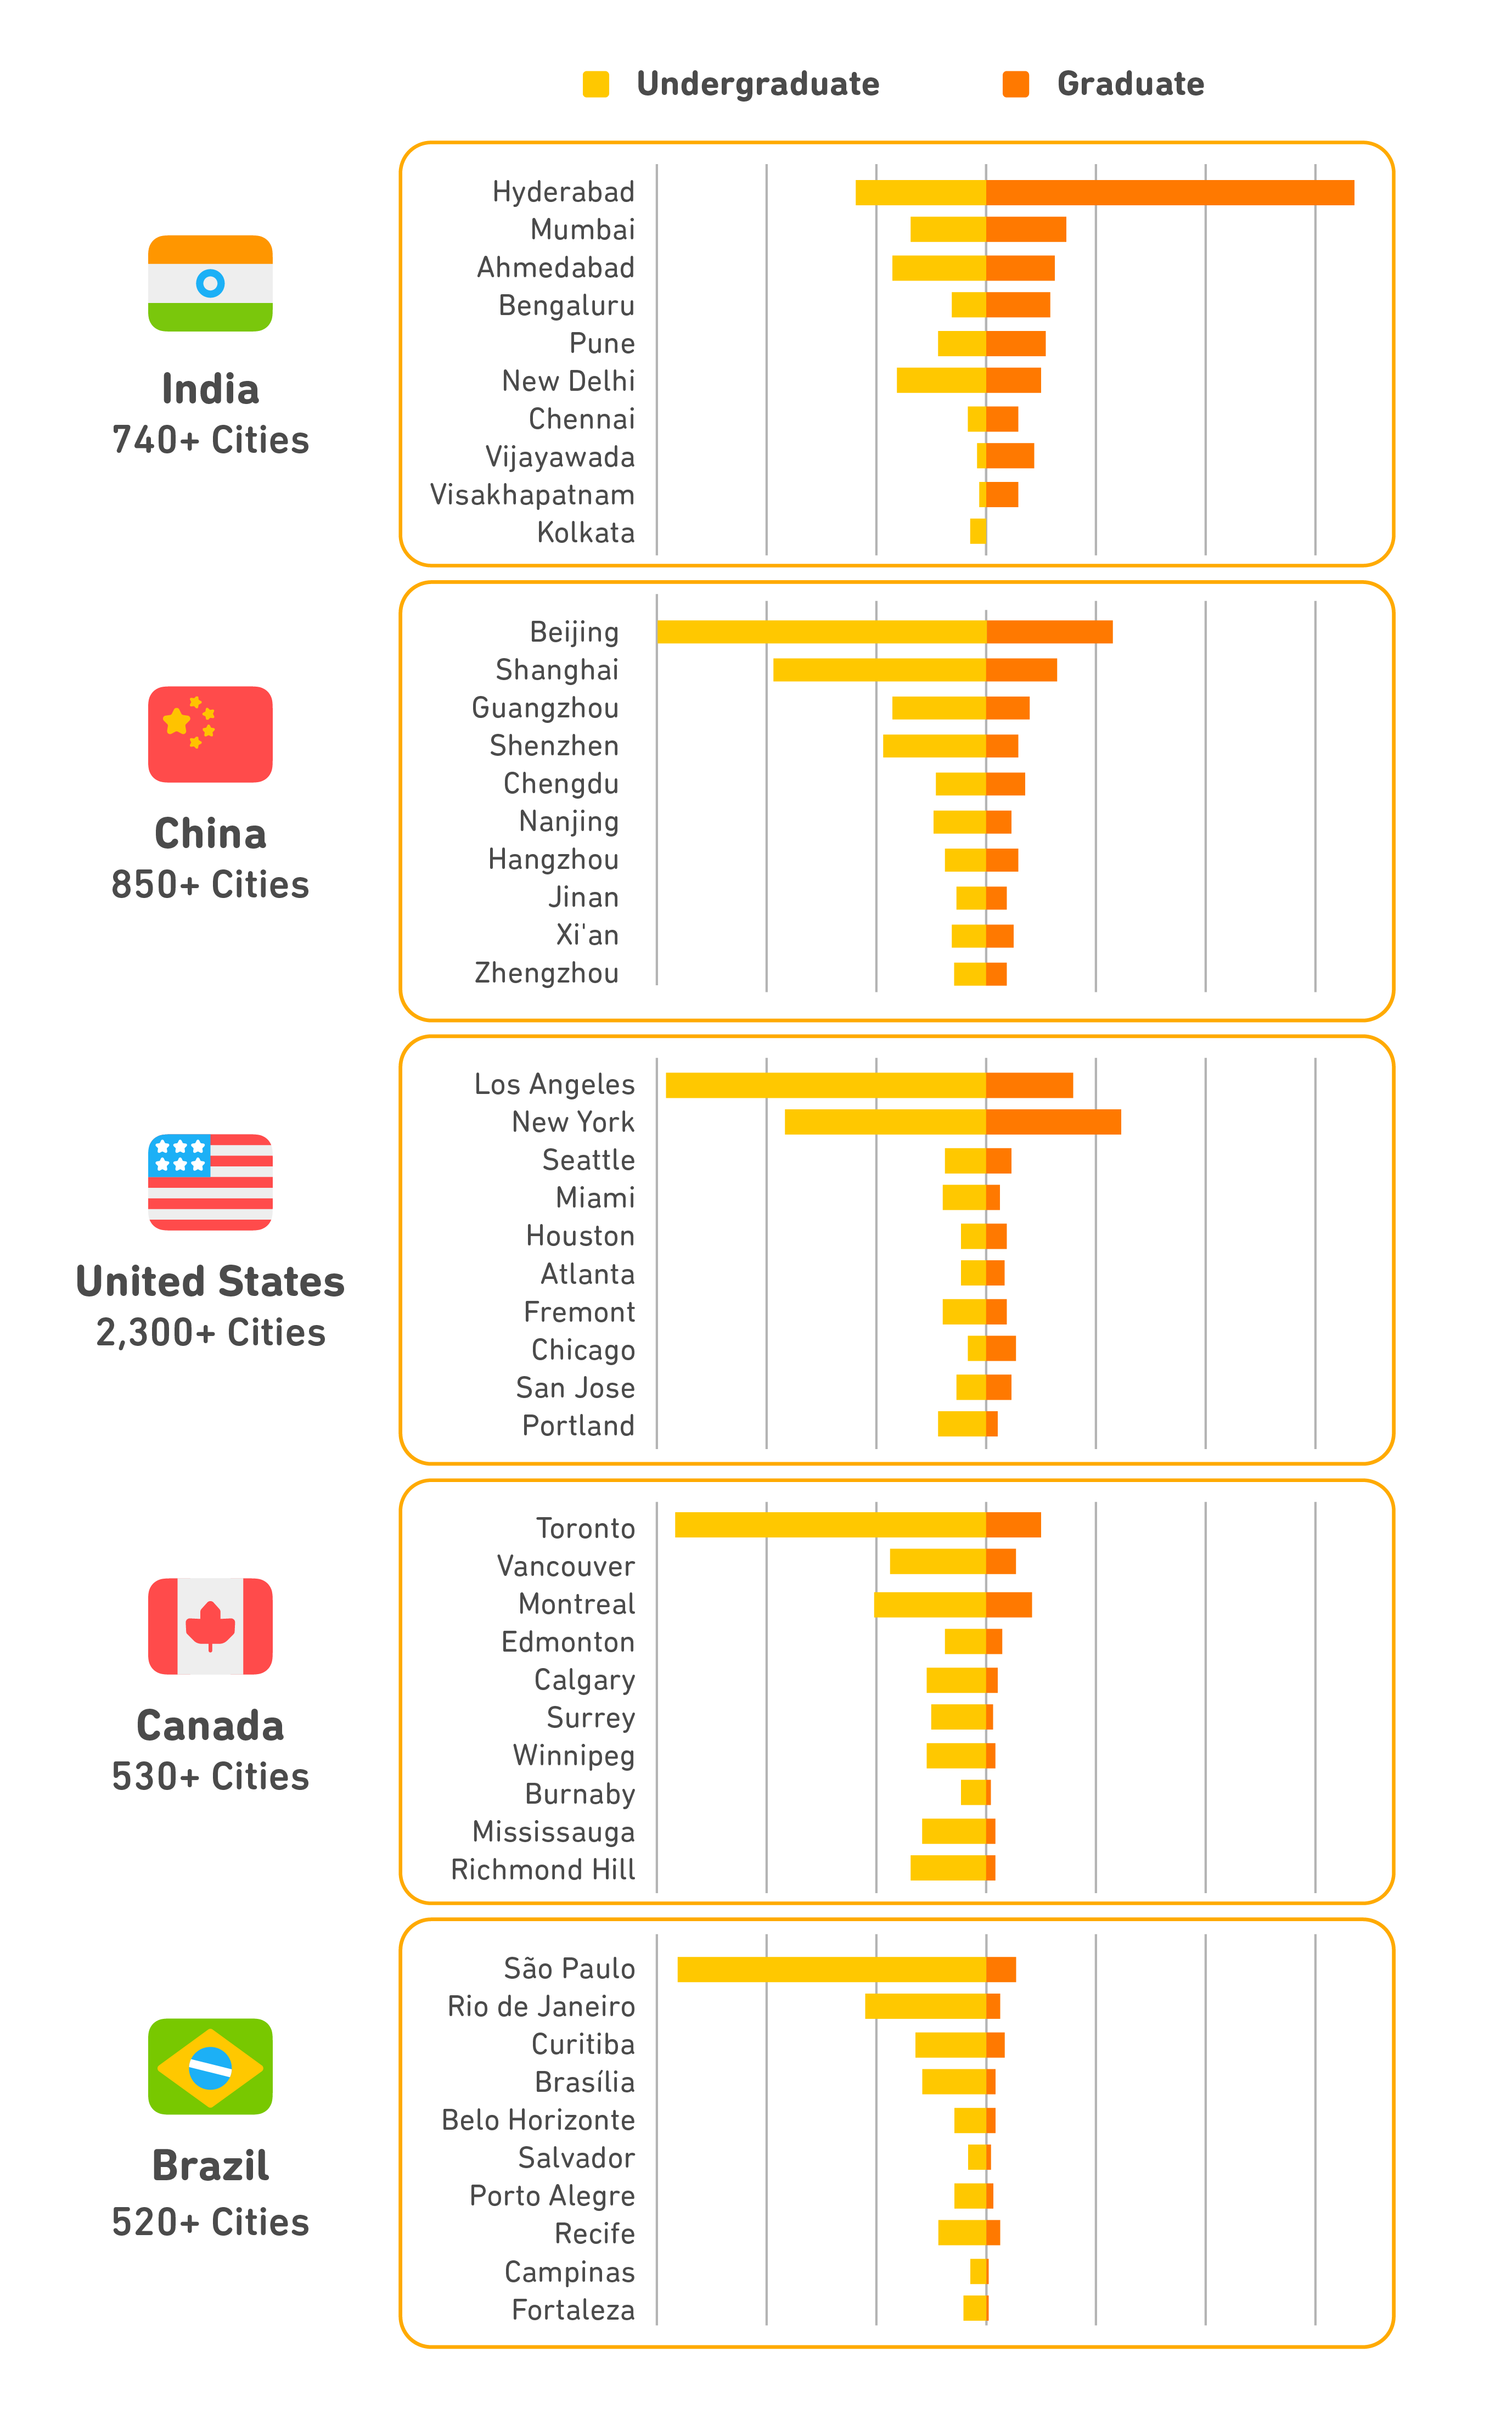 Charts showing the top 10 cities hosting Duolingo English Test takers in India, China, the U.S., Canada and Brazil including a distribution by academic level of study by certified test shares. Distribution proportions are not comparable across countries.